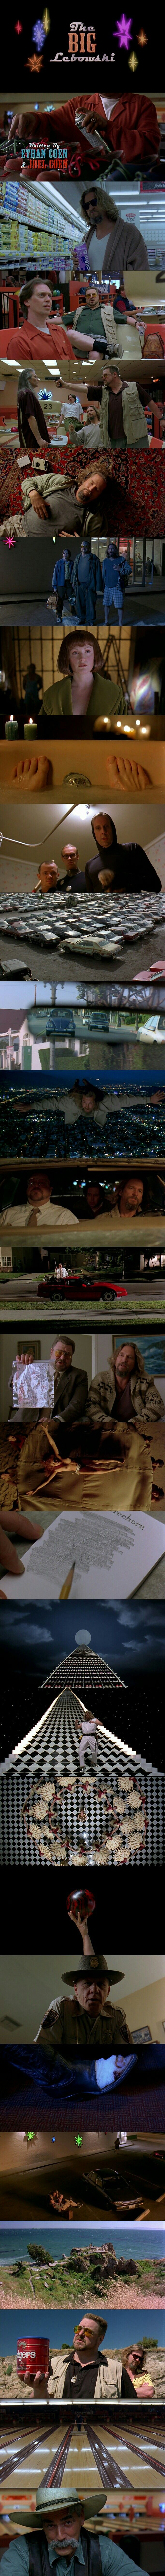 The Big Lebowski (1998) Written by Ethan and Joel Coen. Directed by Joel Coen.